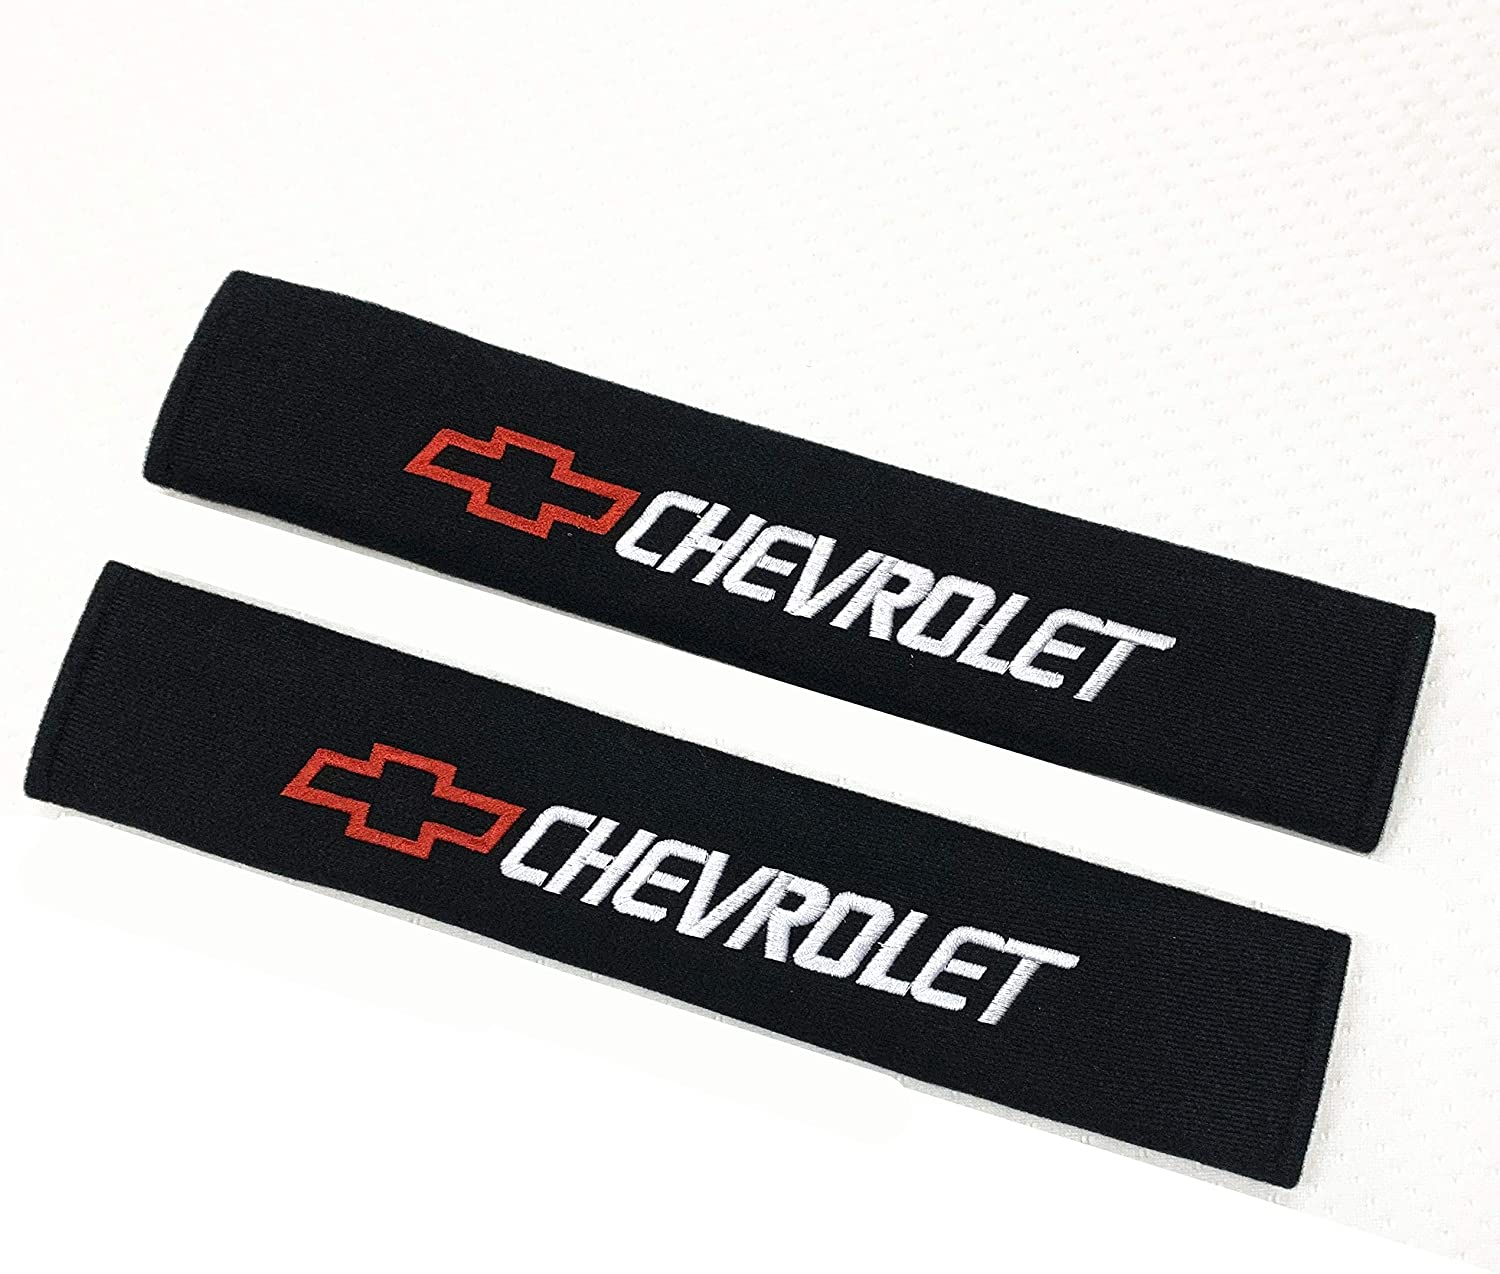 Strap Covers Cushion Long 13INCH Pair with Car Logo ACGOING Car Seat Belt Shoulder Pads Cadillac